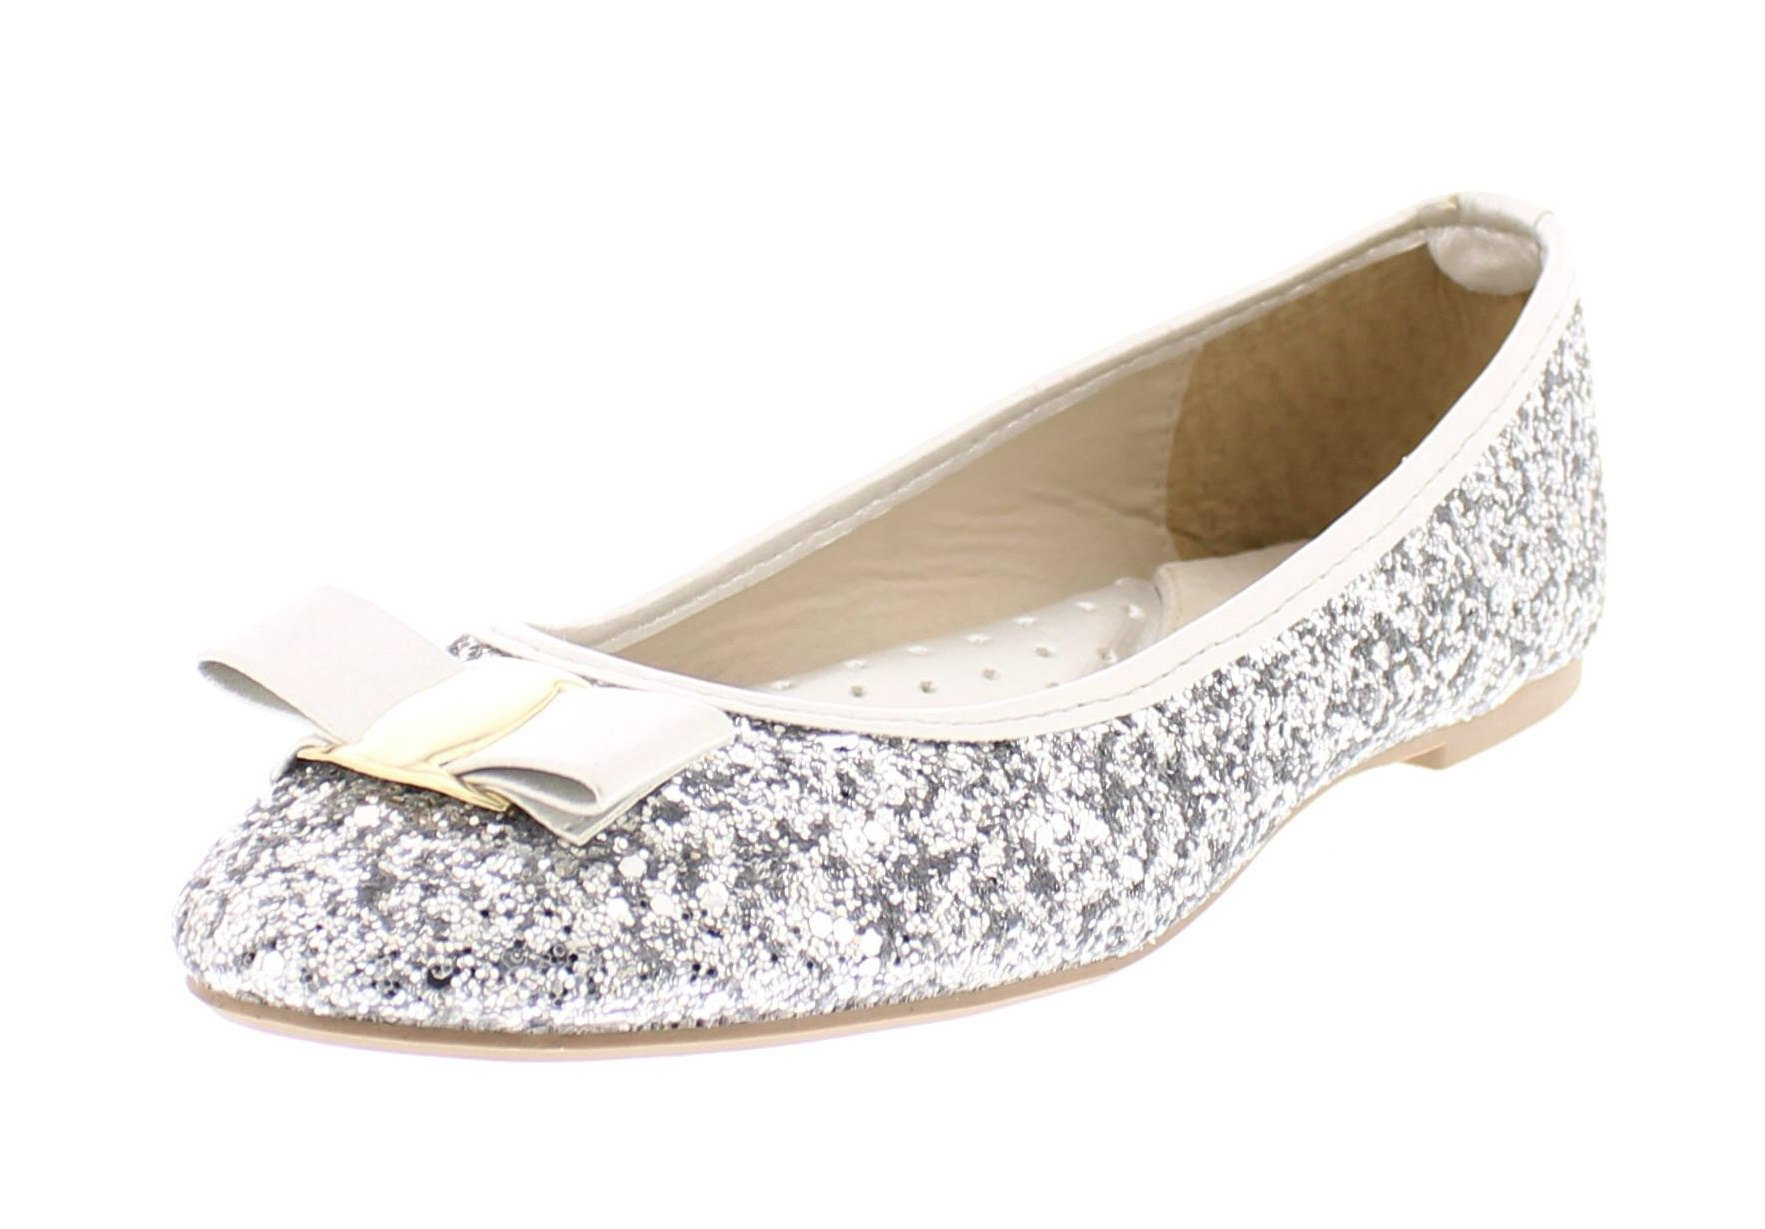 Gold Toe Women's Tempest Metallic Sequin Sparkle Ballet Flat Slipon Dress Pump Bow Ballerina Skimmer Shoe Silver 10 US